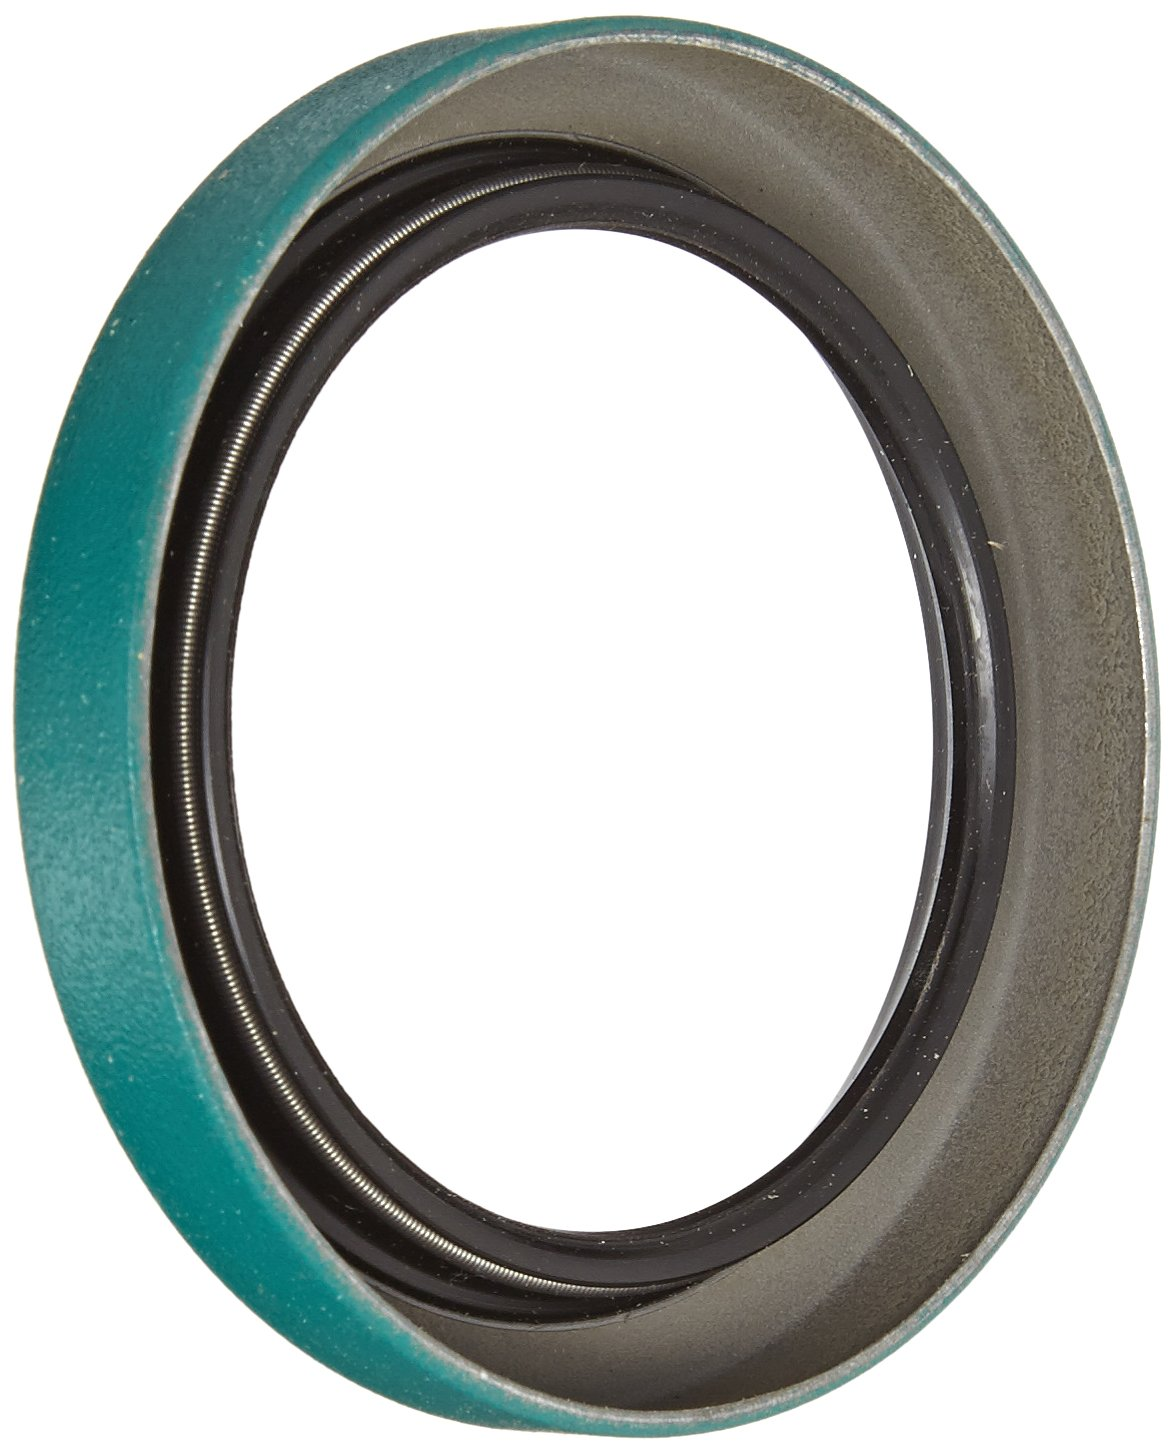 SKF 19778 LDS & Small Bore Seal, R Lip Code, CRW1 Style, Inch, 2